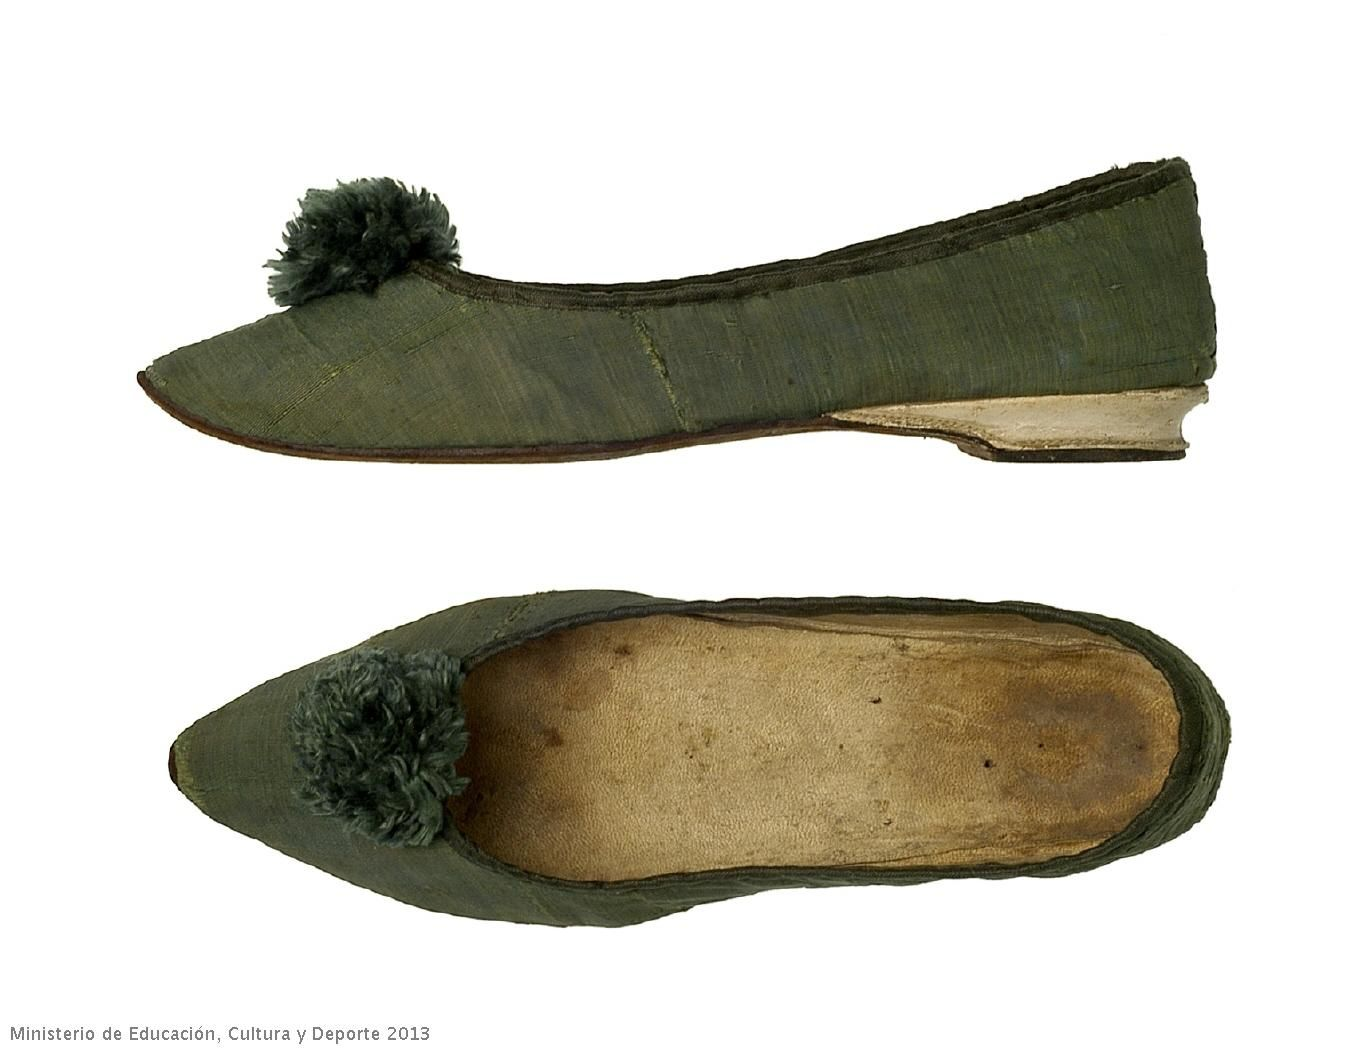 [via Google Translate] 1795 1800 Heeled Shoes Very Low, Made Green Silk  Weave. The Heel Is Leather, Like The Sole. The Leather Interior Is Lined  With ...